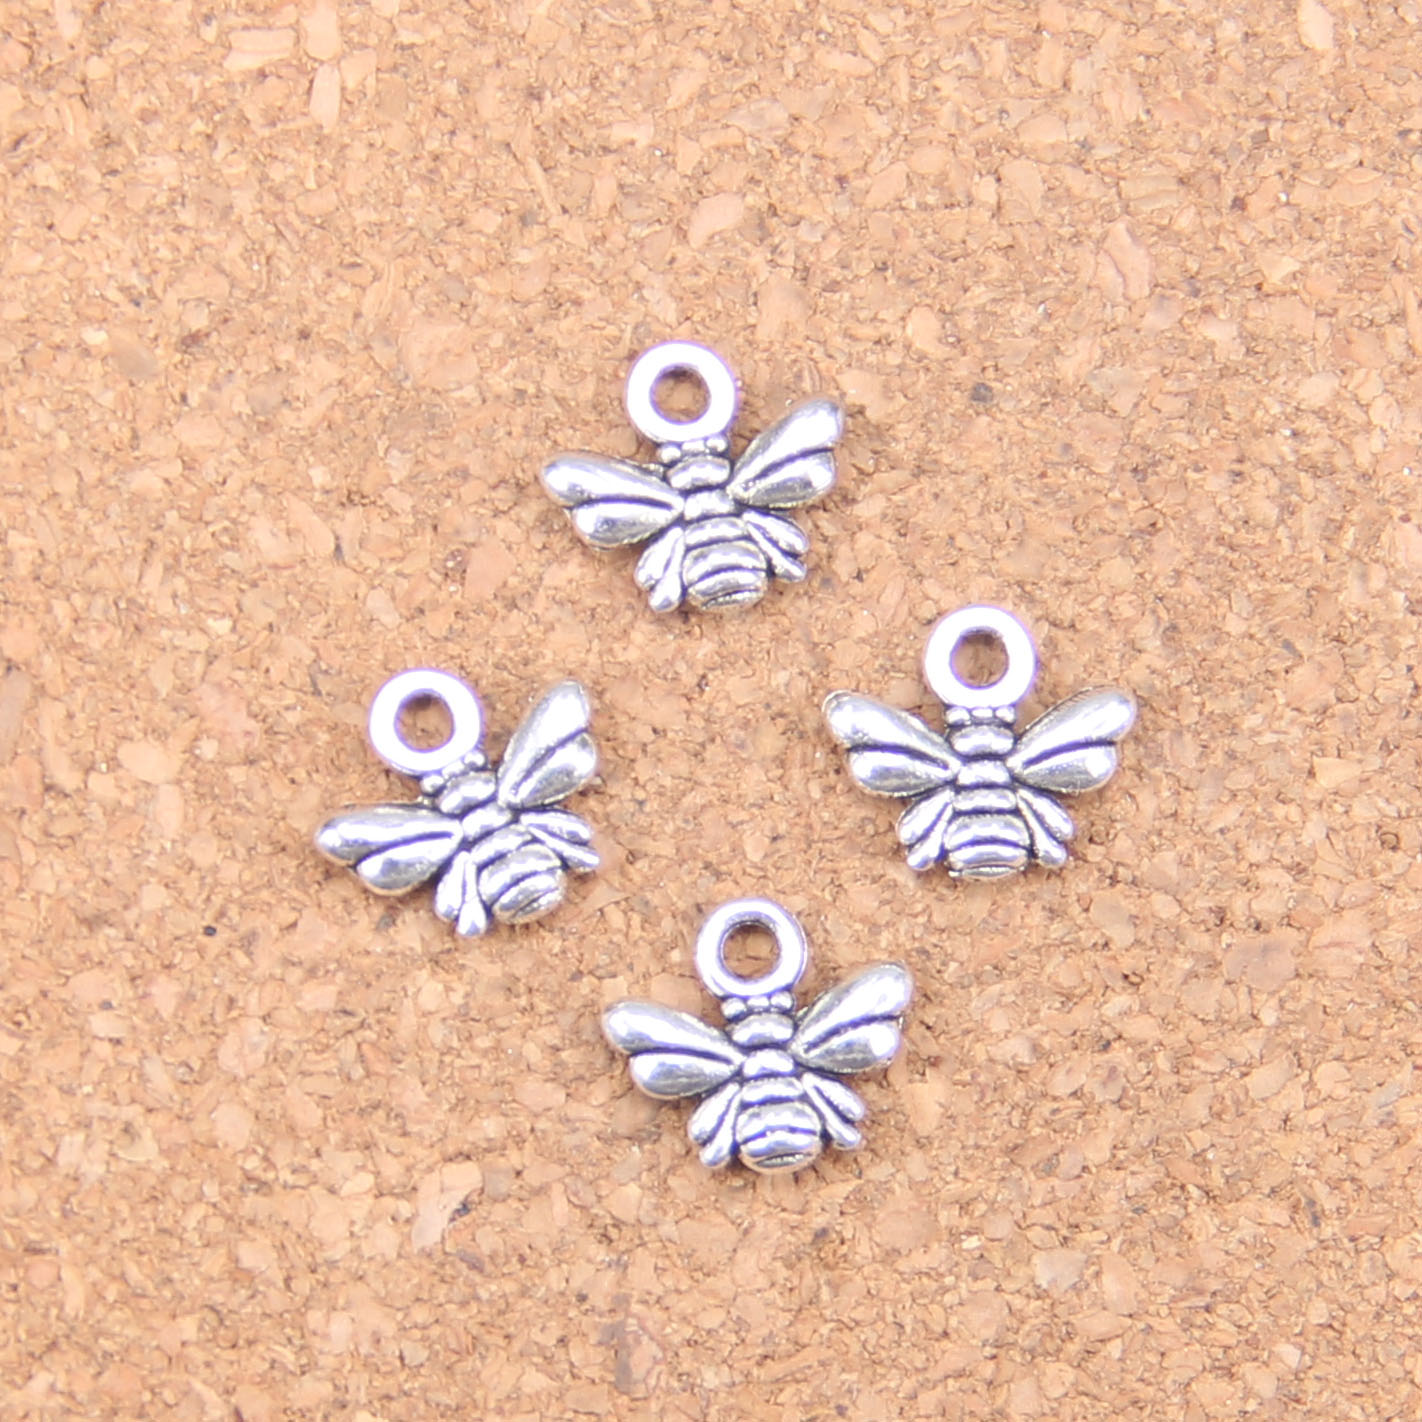 GOLD BRONZE PENDANT 15MM-CRAFTS-SAVE THE BEES BEE CHARM TIBETAN SILVER